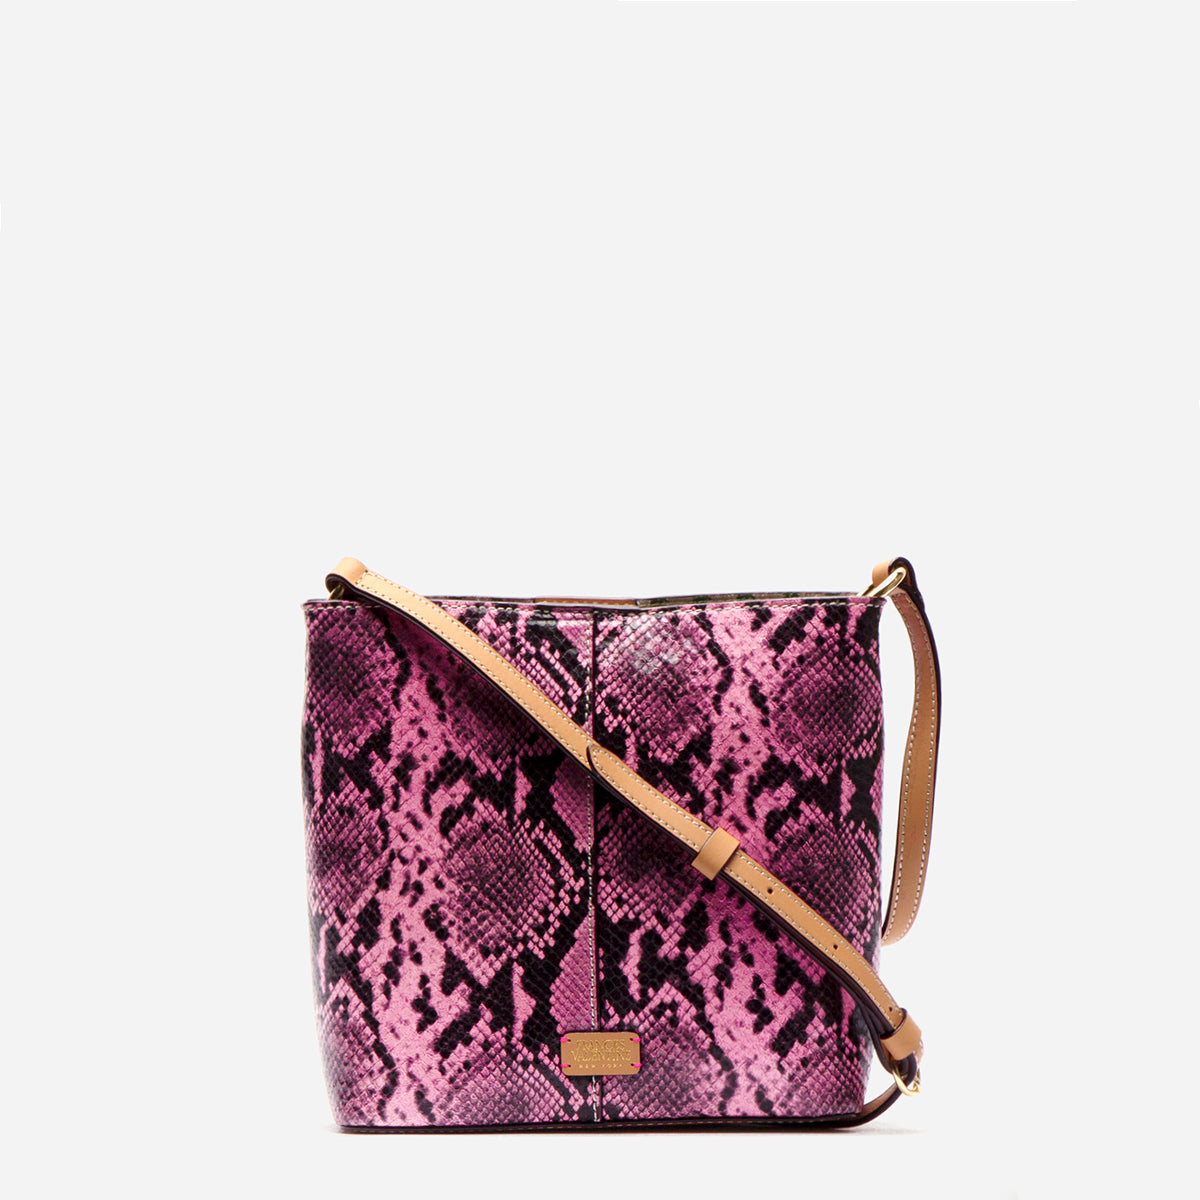 Small Finn Snake Embossed Leather Pink - Frances Valentine